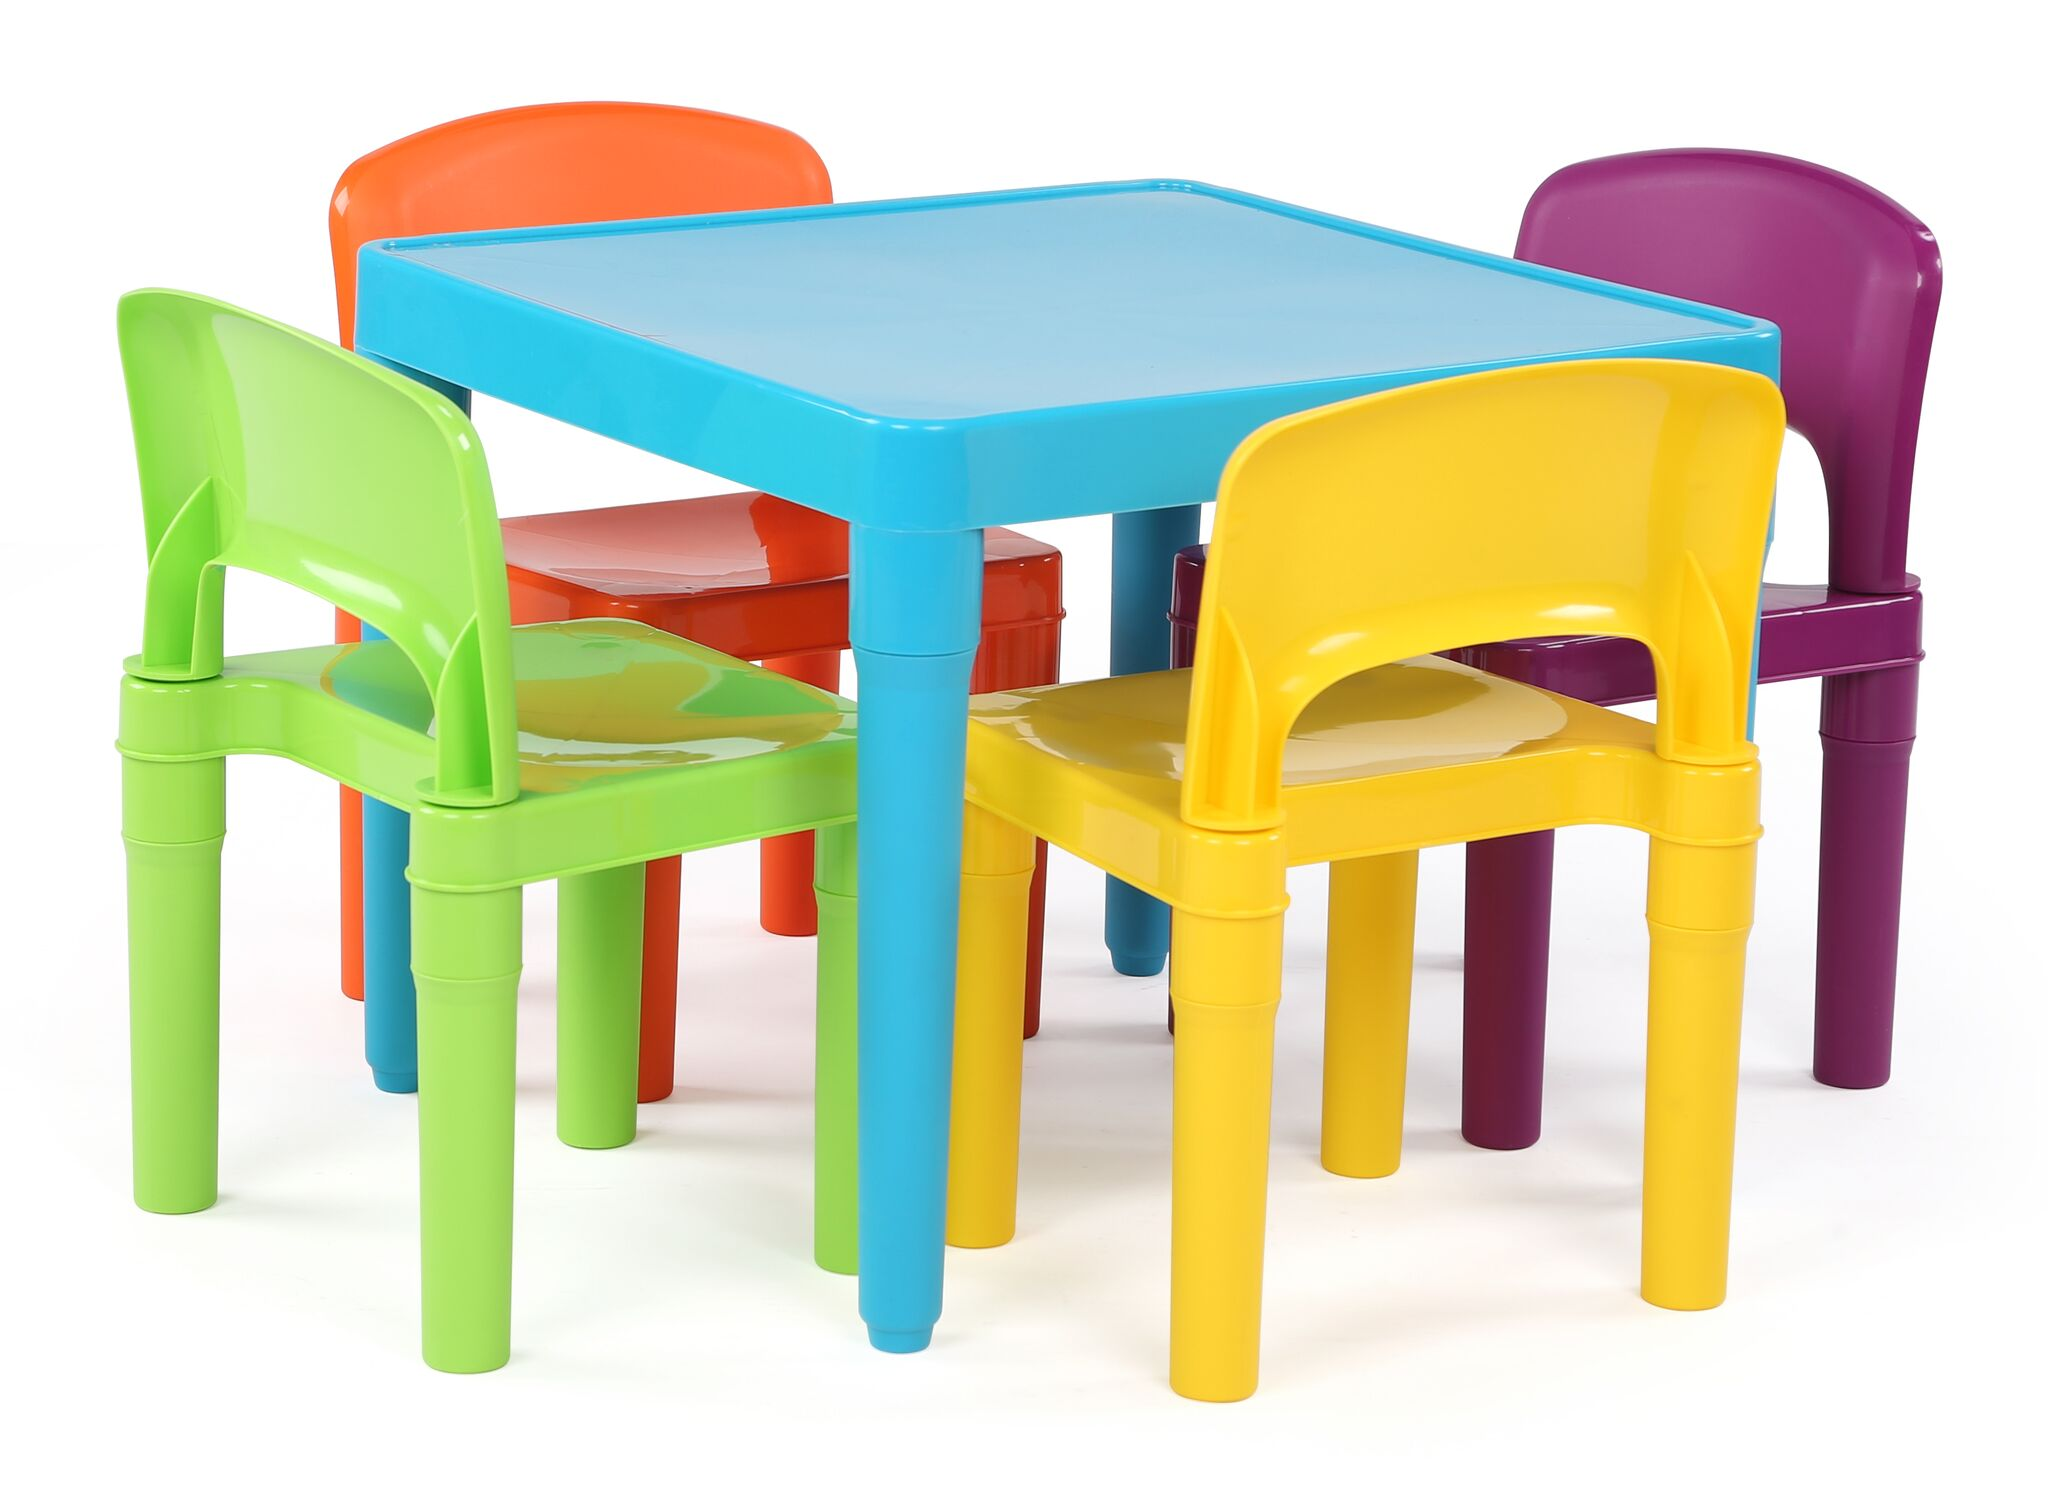 Playtime Kids Plastic Table And 4 Chairs Set, Aqua